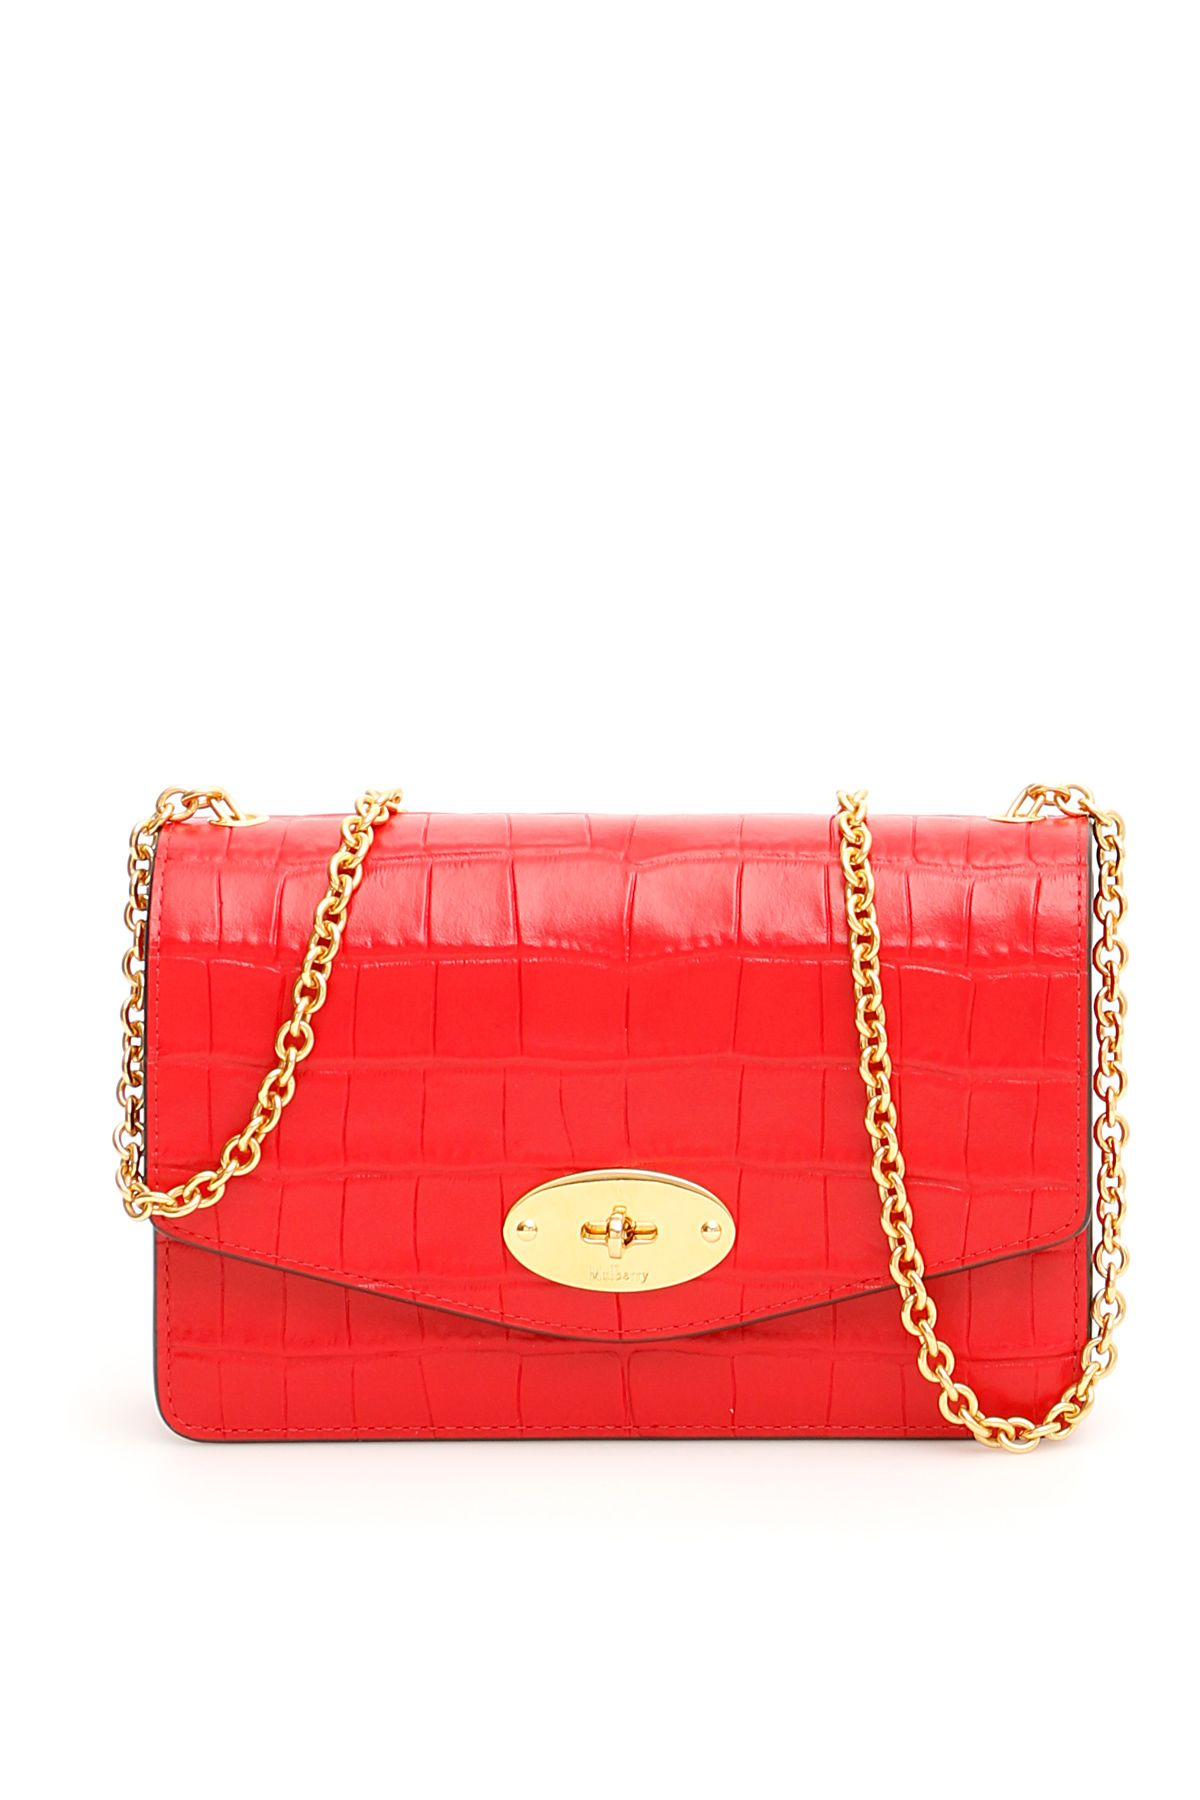 a92cb2695085 Mulberry Mulberry Croc Print Small Darley Bag - RUBY RED